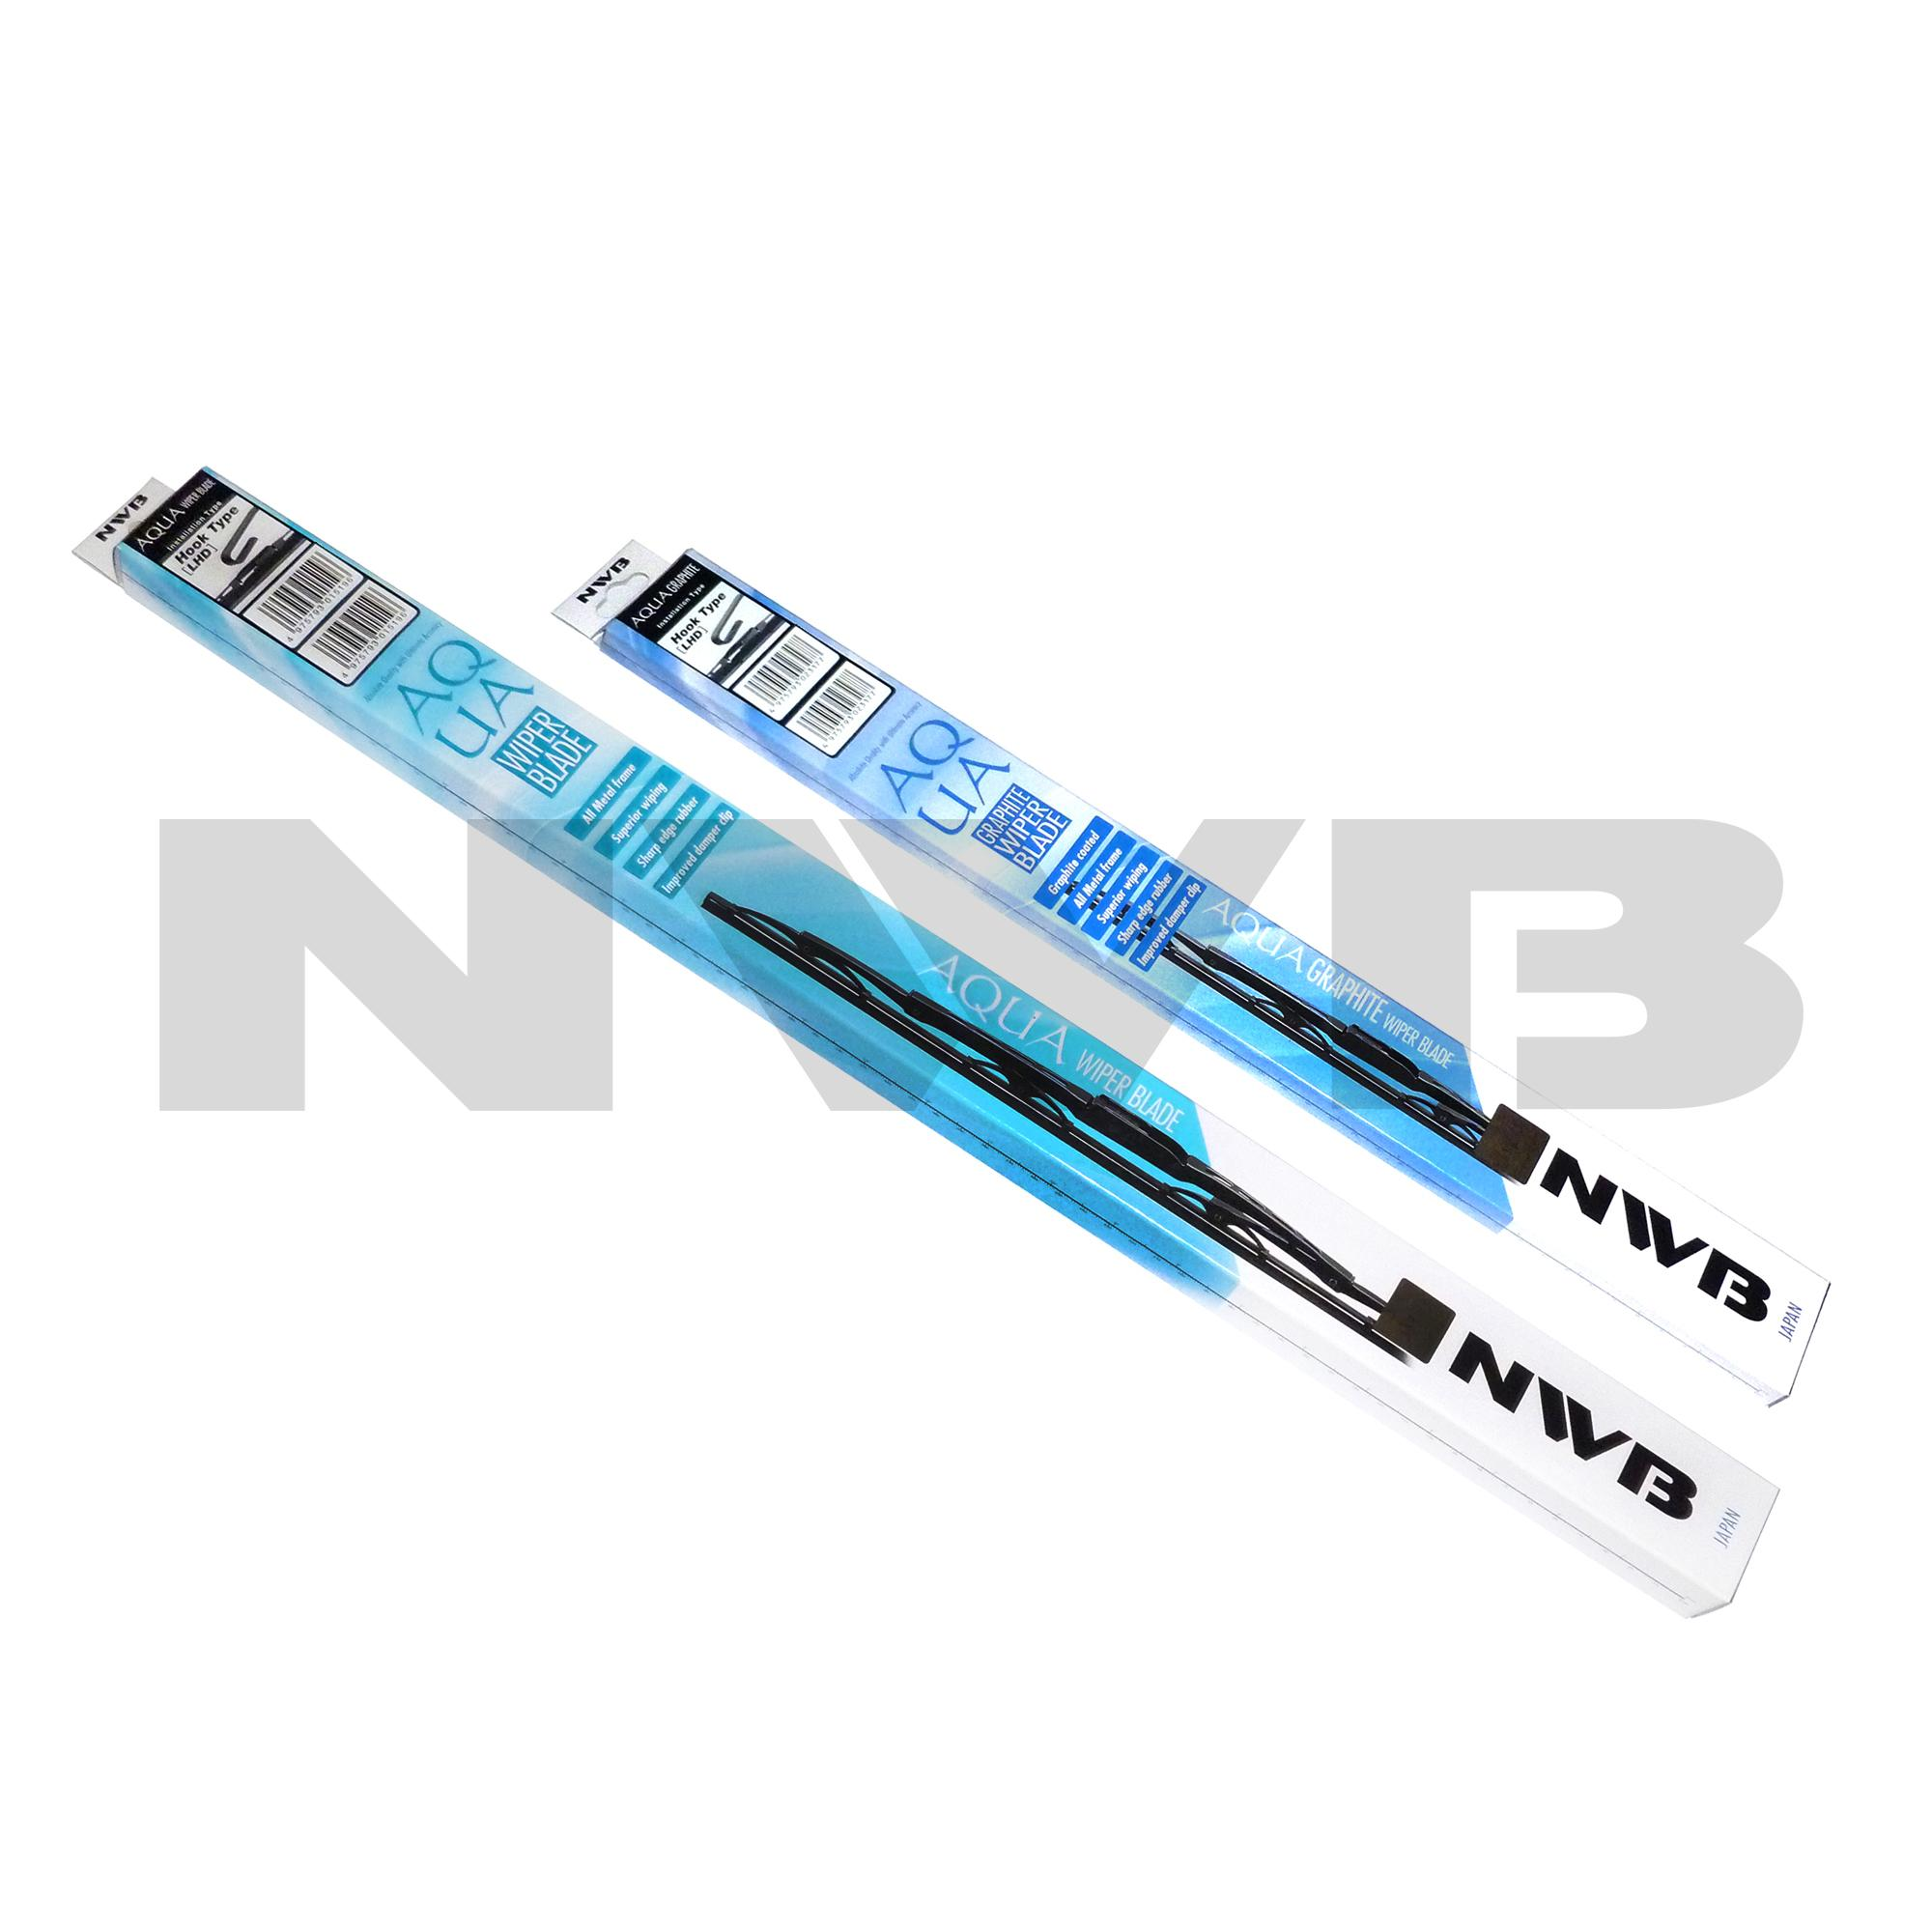 NWB AQUA Wiper Blade for Mitsubishi Lancer 2009-2015 - (SET)